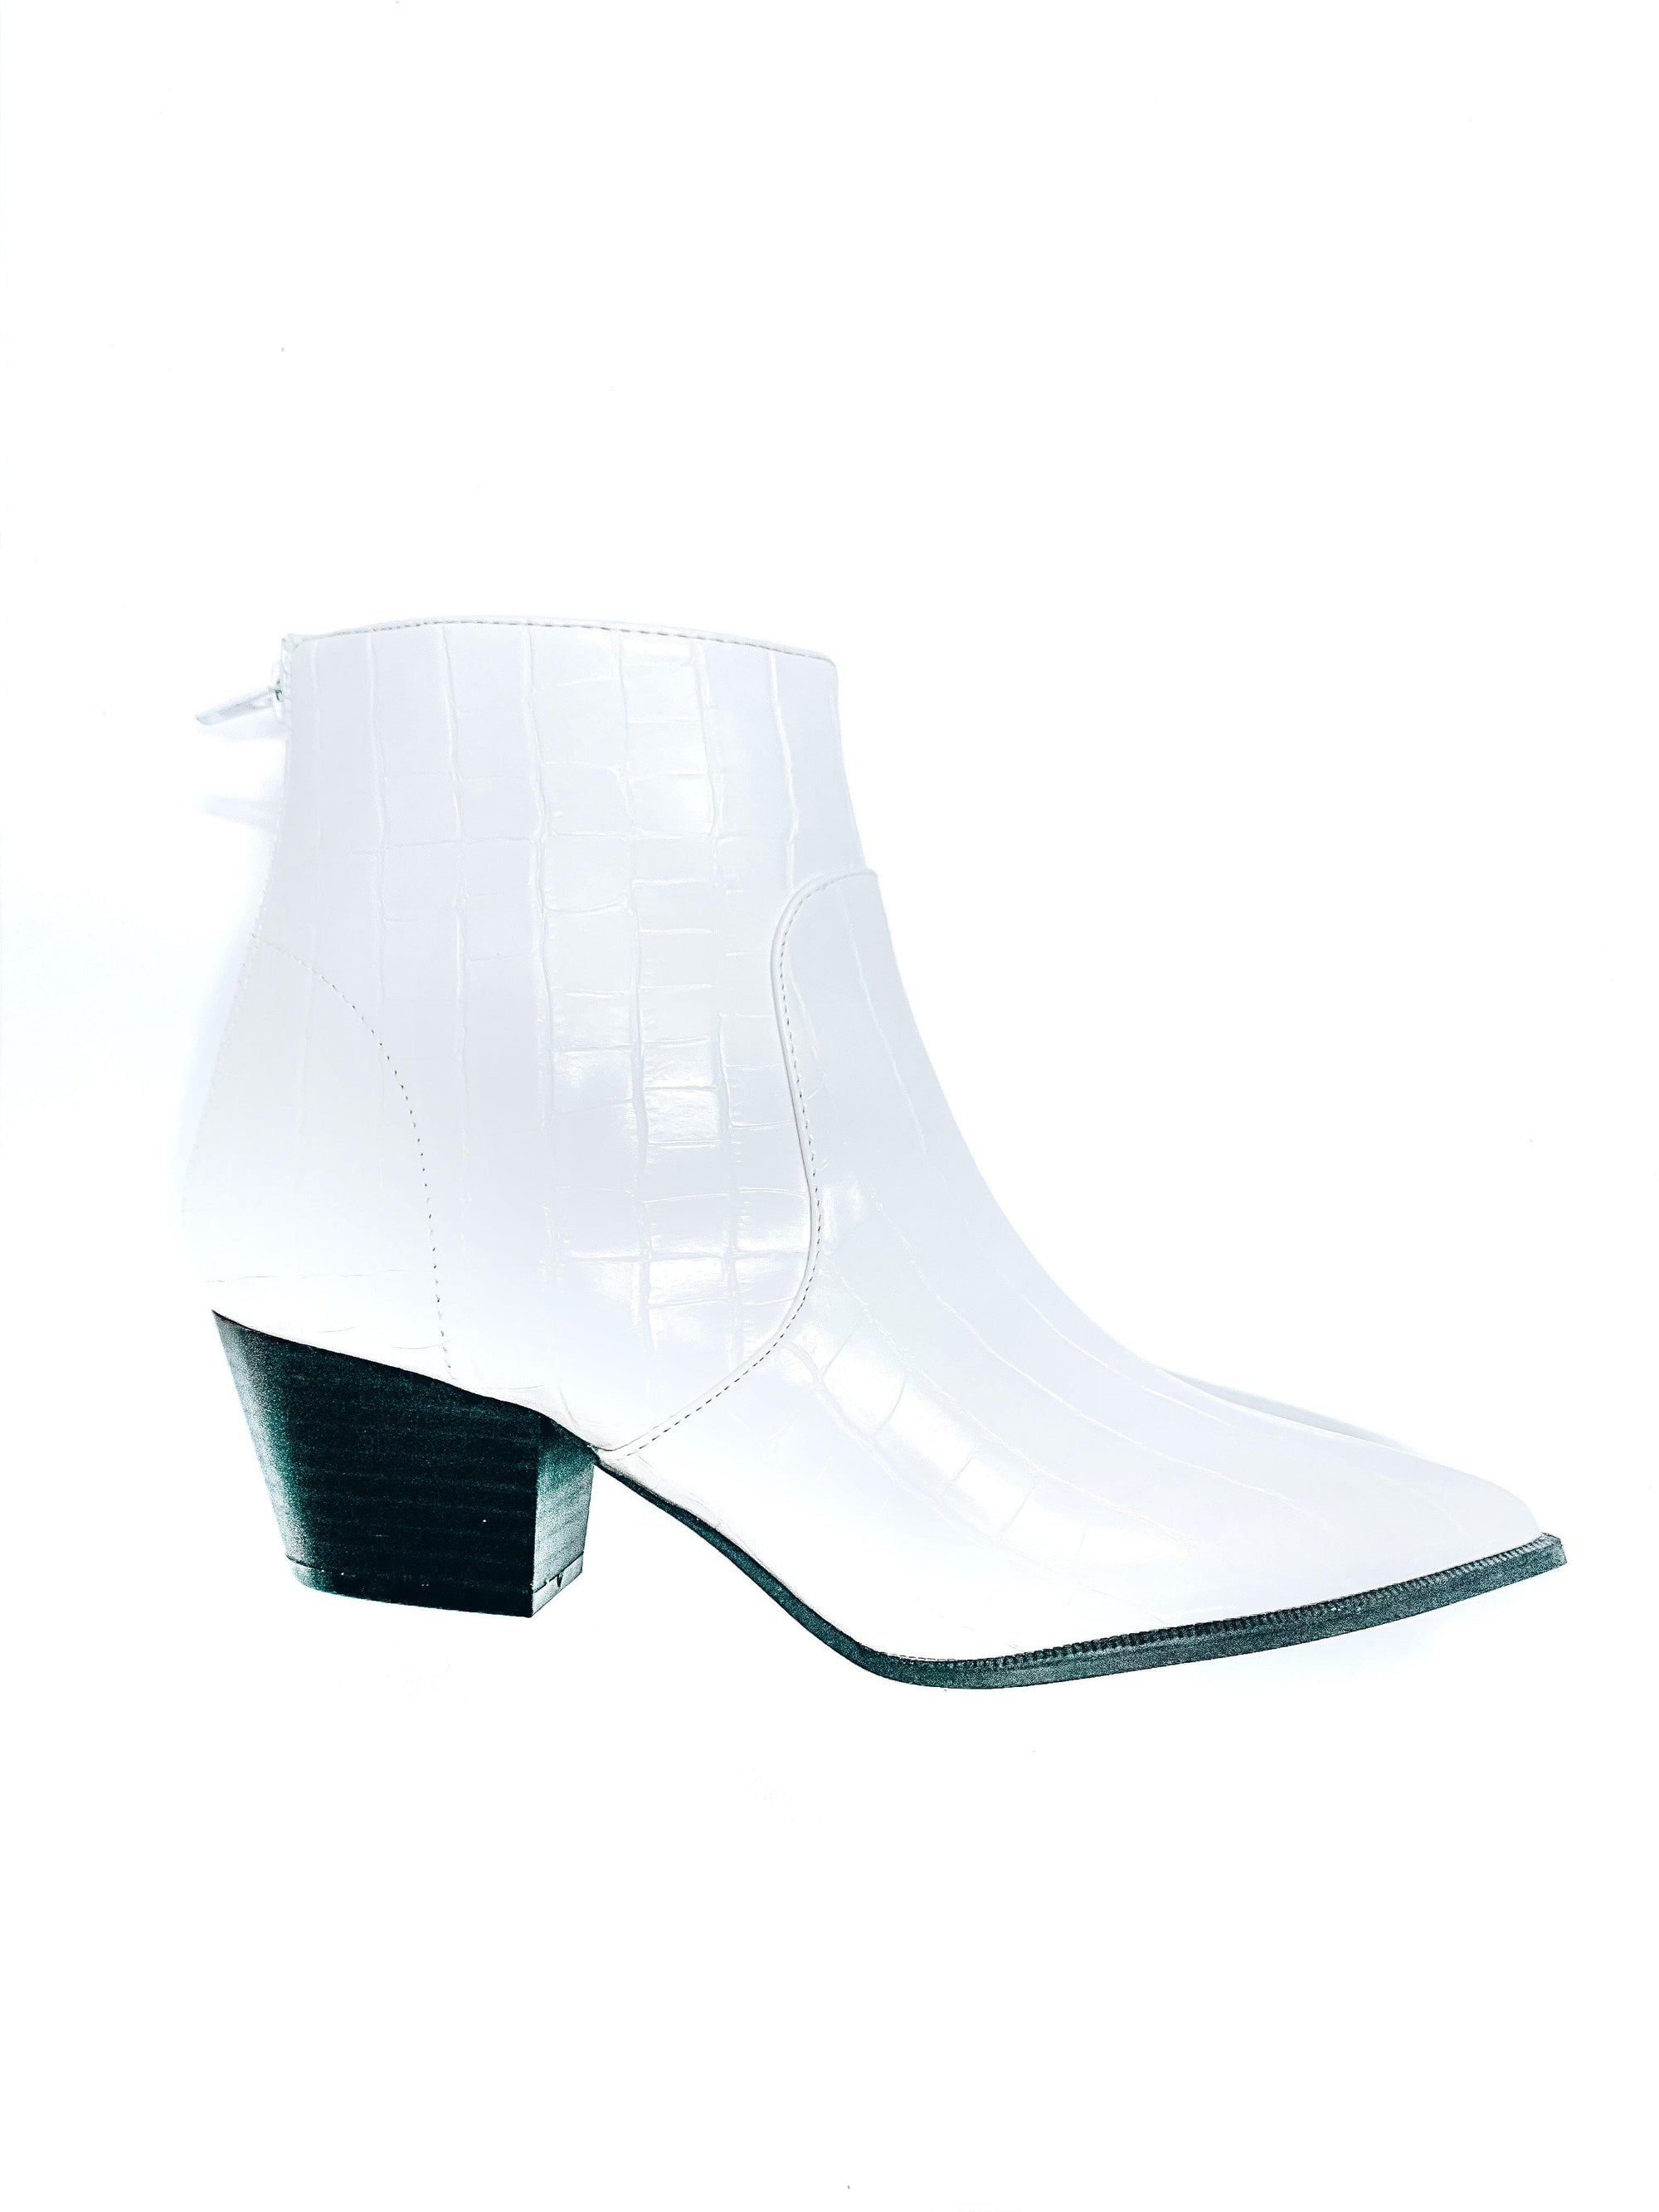 The Madeline-Women's SHOES-New Arrivals-Runway Seven